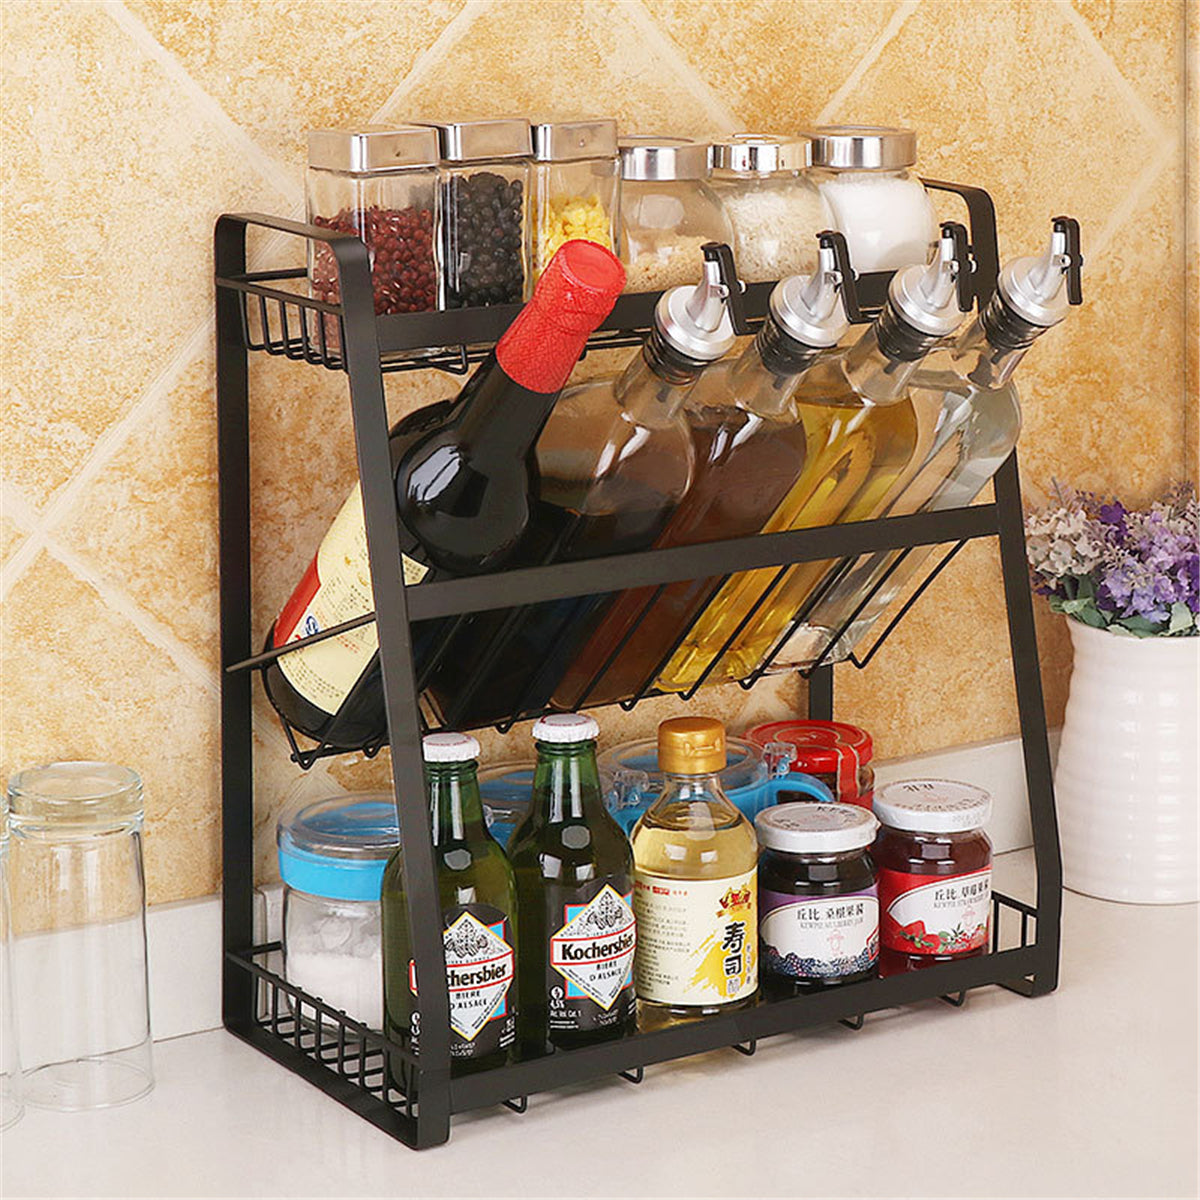 3 Layers Kitchen Spice Rack Stainless Steel Countertop Spice Jars Bottle Shelf